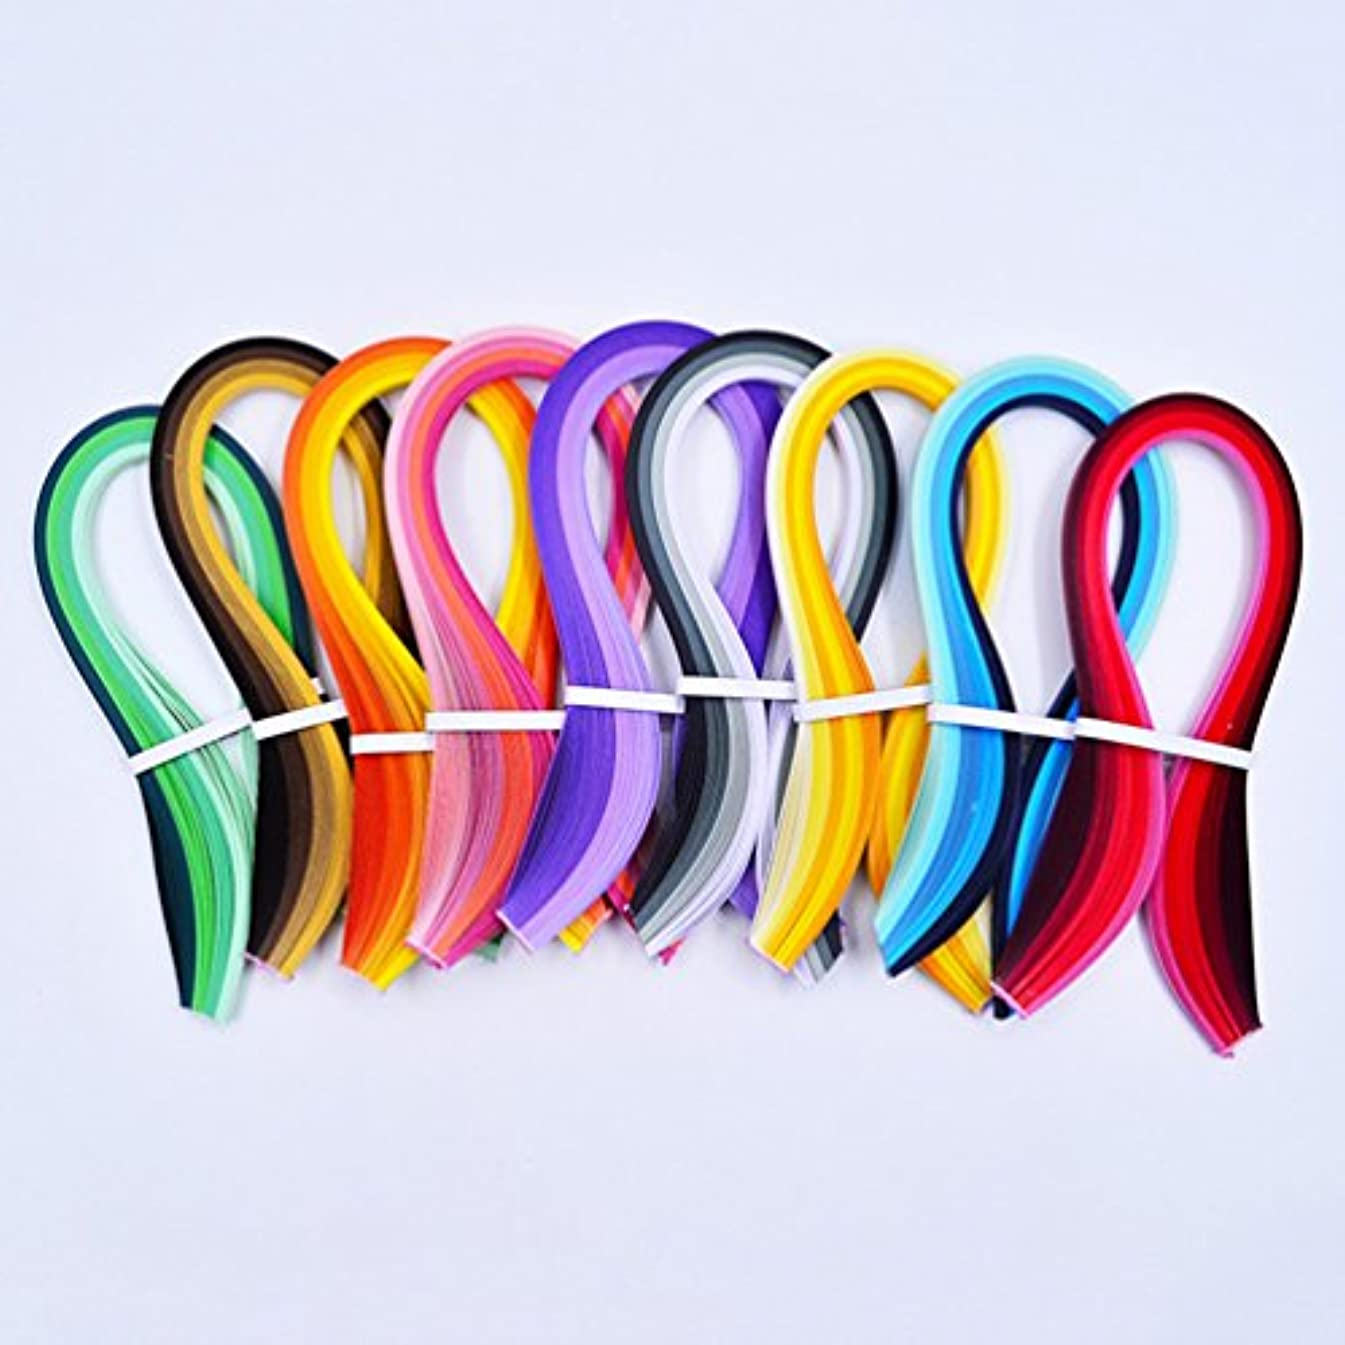 10mm x 39cm Paper Quilling Strips Kits 900 Strips